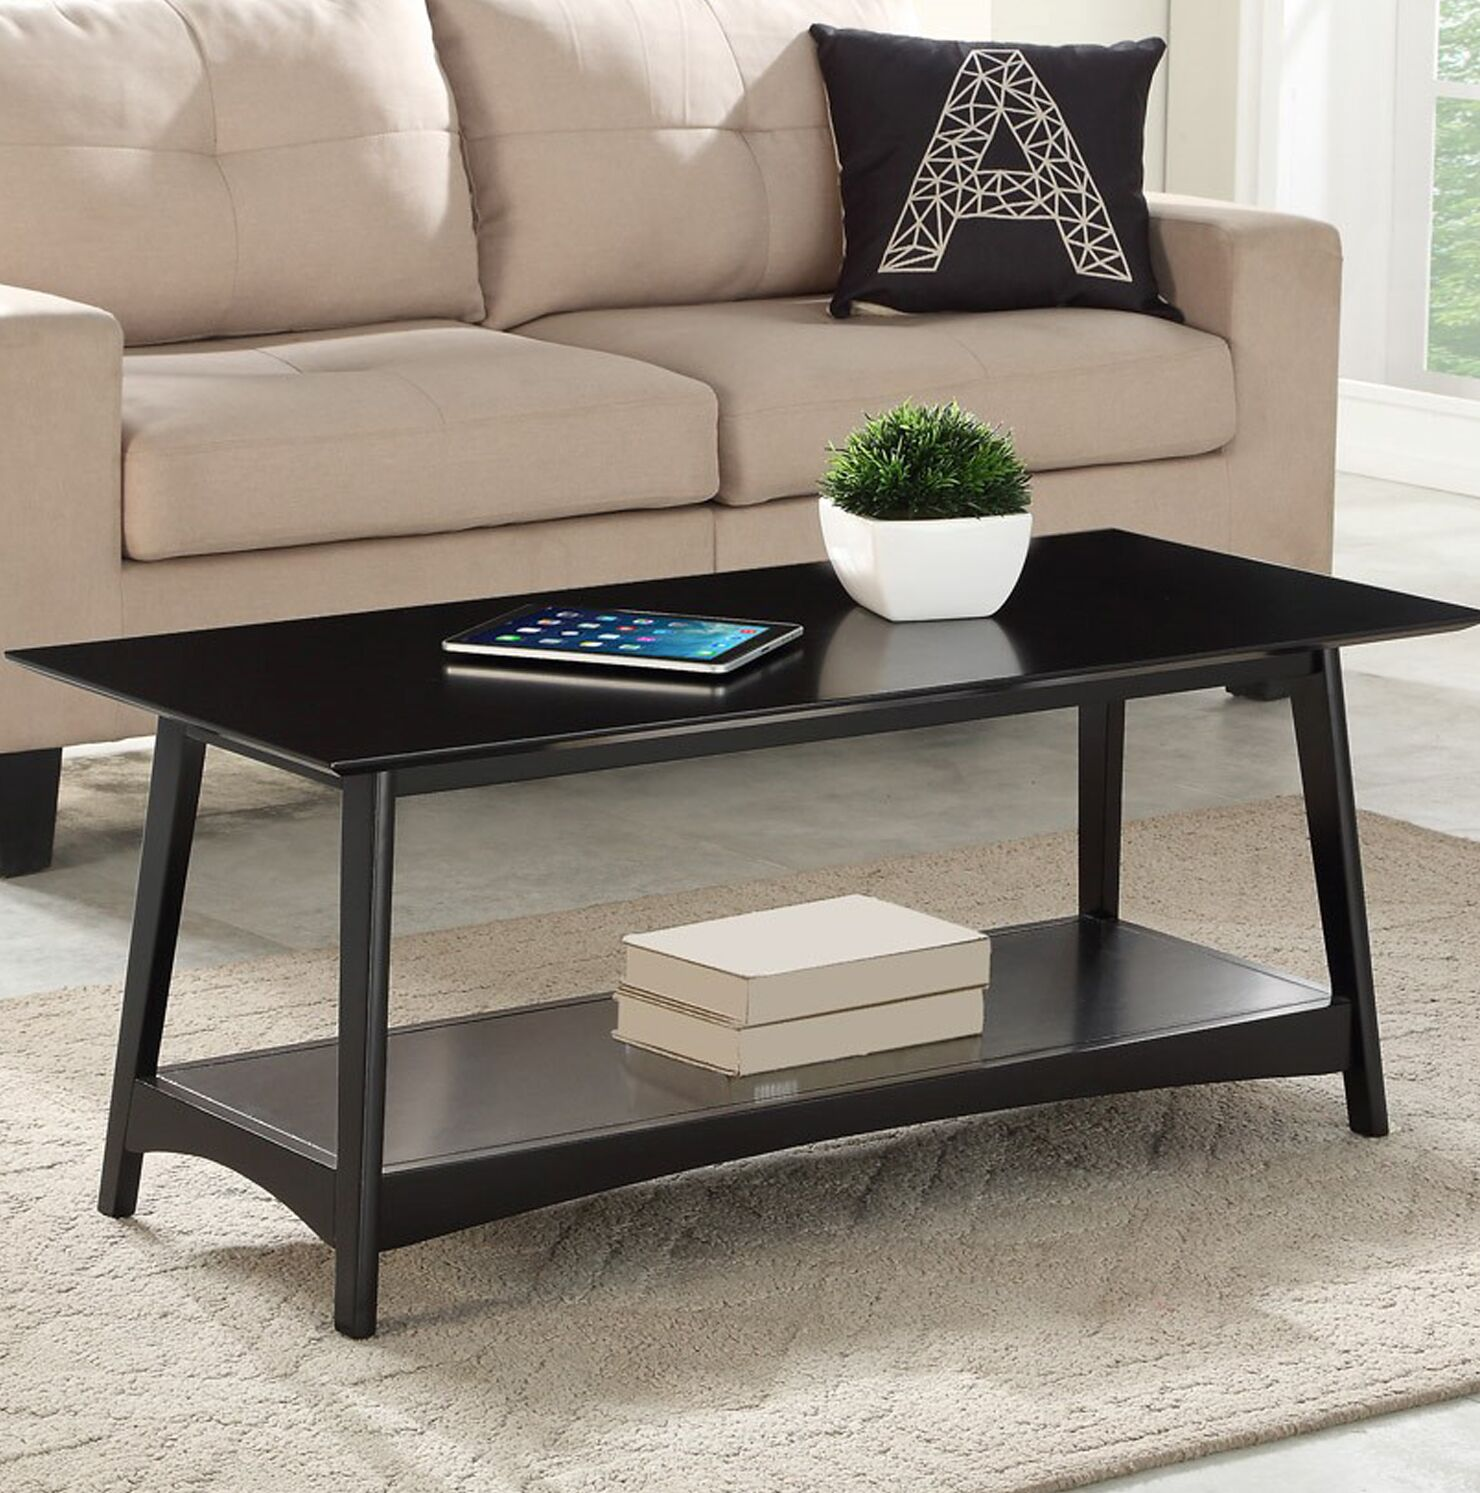 Mcatee Coffee Table Table Base Color: Black, Table Top Color: Black